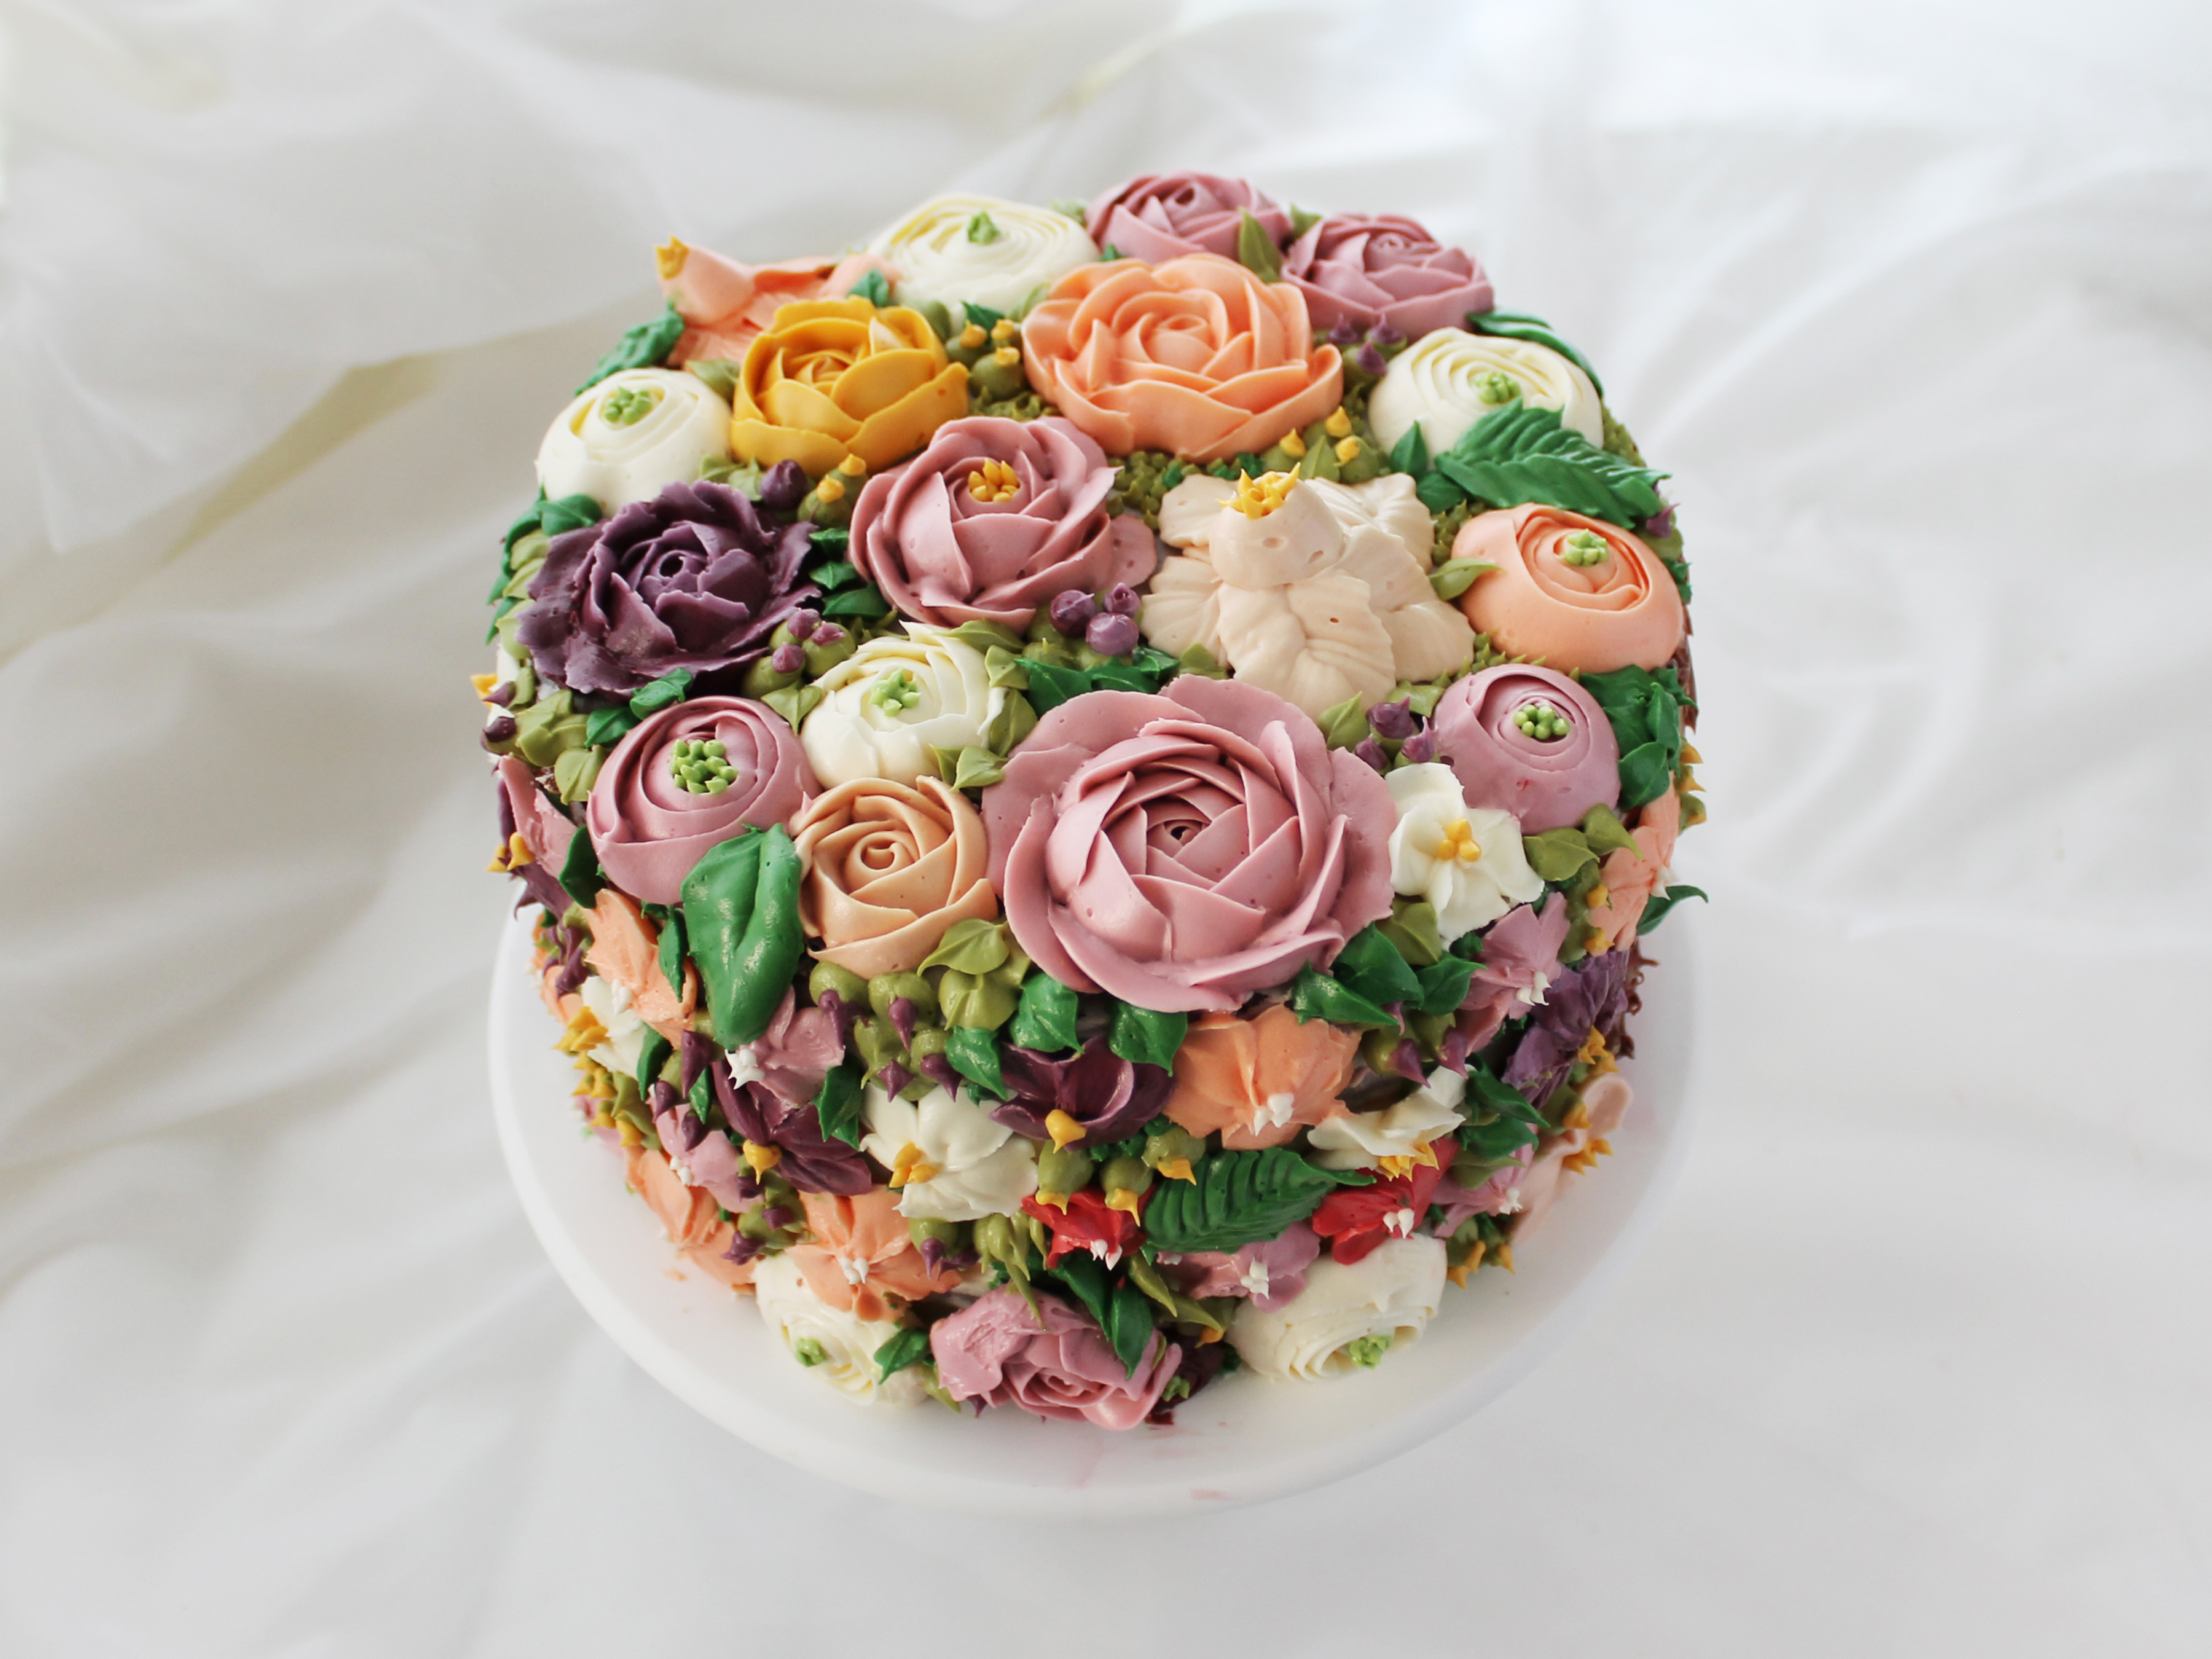 How to make icing flowers for a flower cake genius kitchen izmirmasajfo